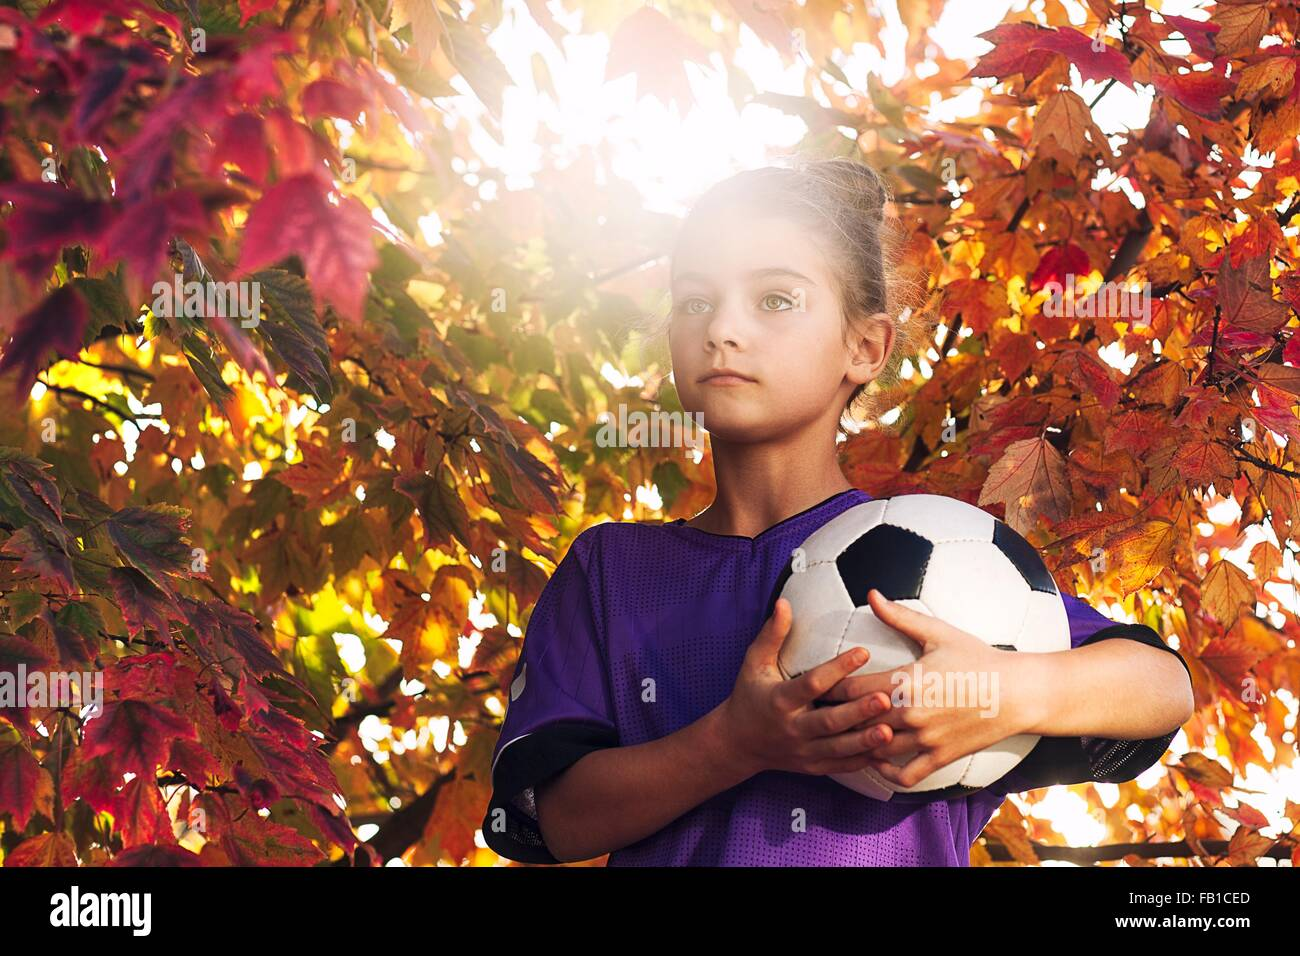 Girls by tree covered in autumn leaves holding football looking away - Stock Image